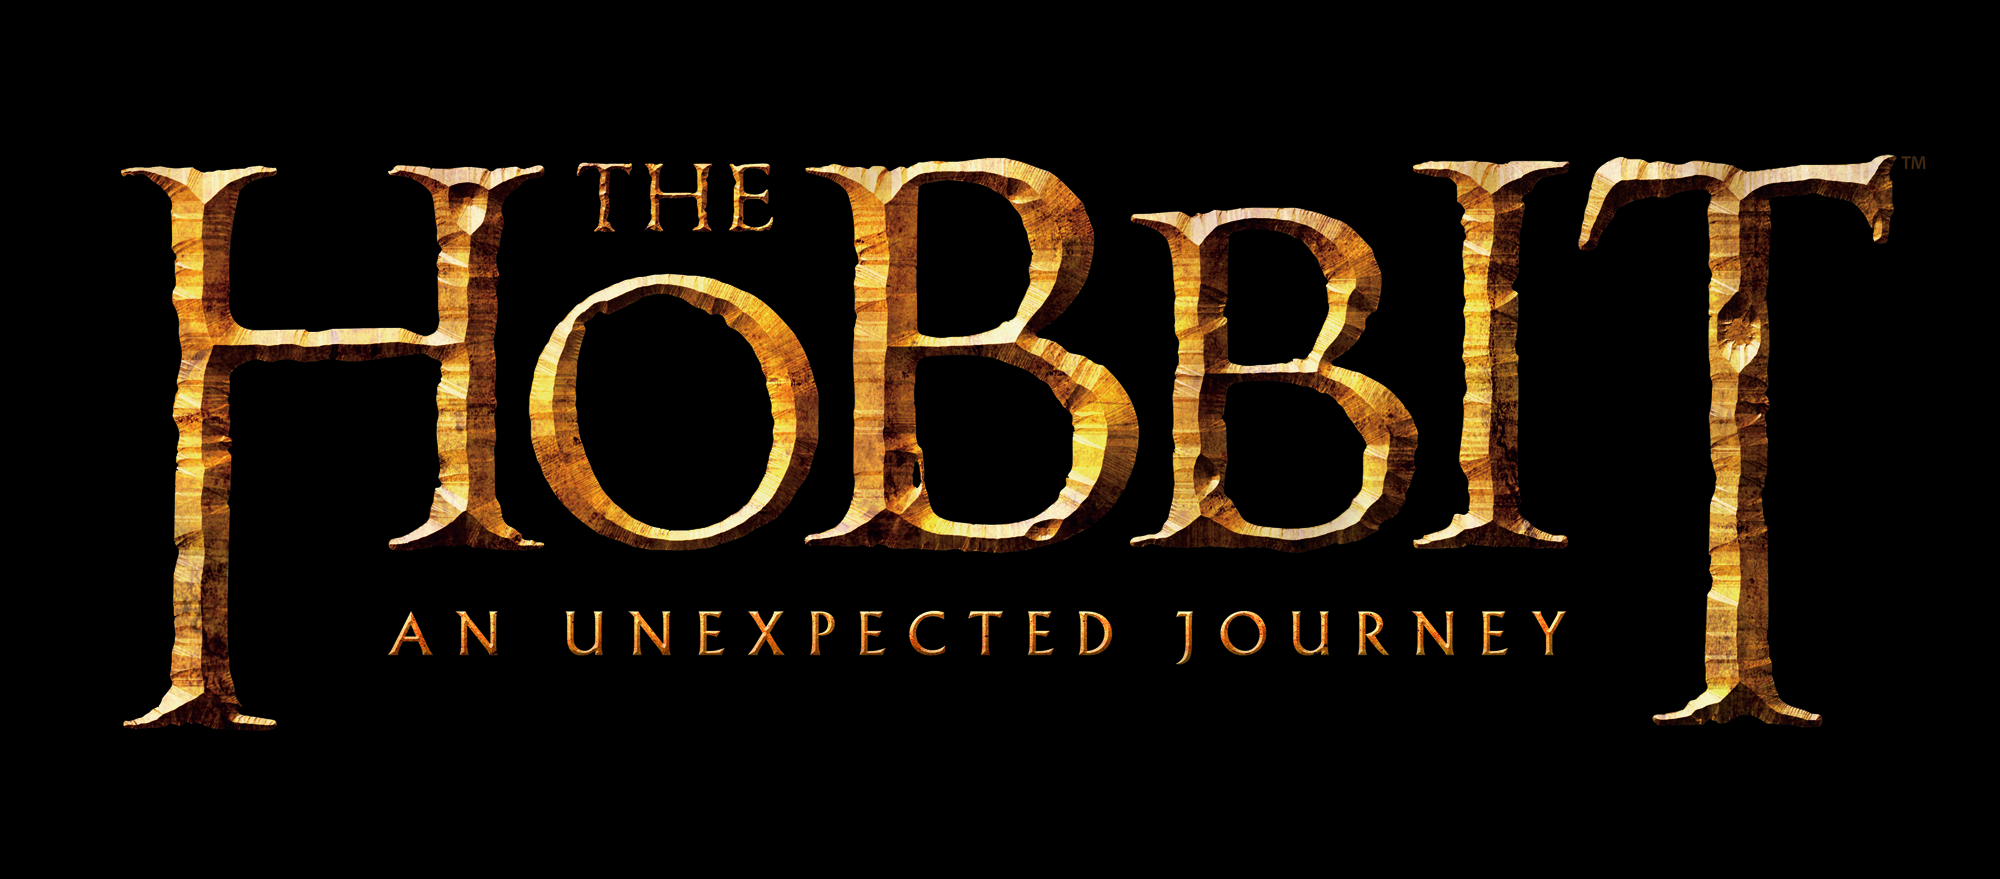 "the lord of the rings trilogy film studies essay Remotely comparable (cs lewis was grade-school stuff, robert e howard   reviewing the ring trilogy in the mid 1950s, edmund wilson famously  in the  essay ""on fairy-stories,"" written around the time the idea for the lord of  if the  hobbit is ultimately something other than a movie, the lord of the."